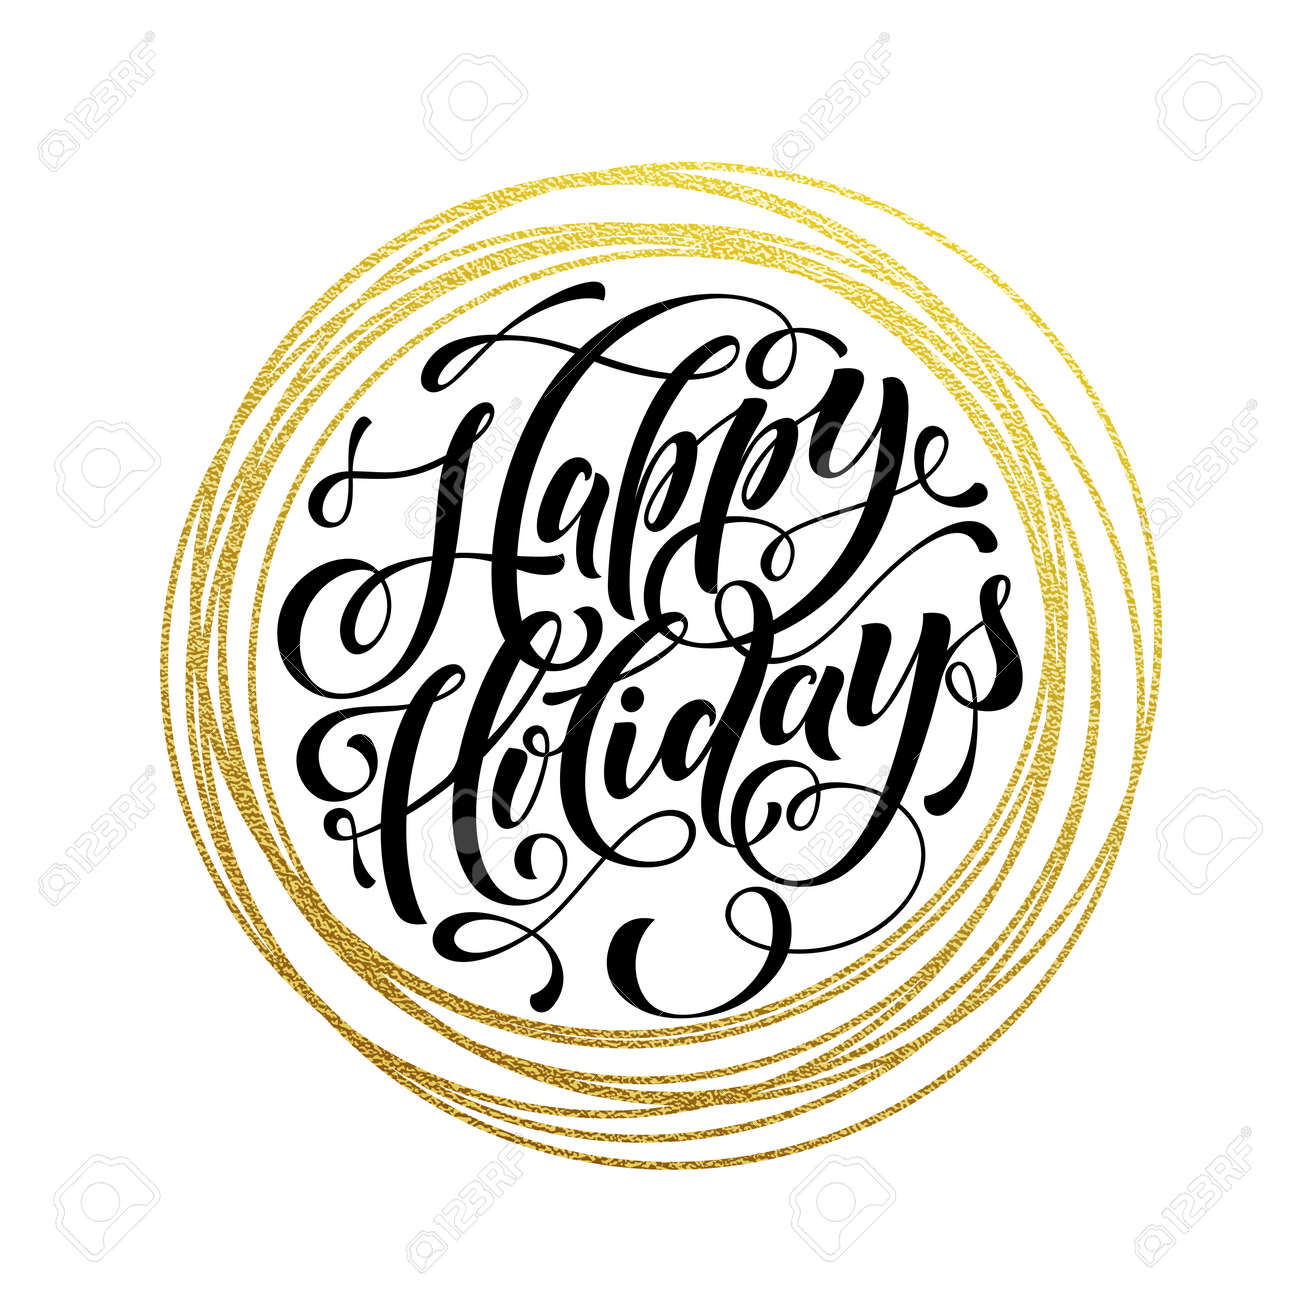 happy holidays gold greeting card golden sparkling decoration rh 123rf com happy holidays calligraphy vector happy holidays vector art free